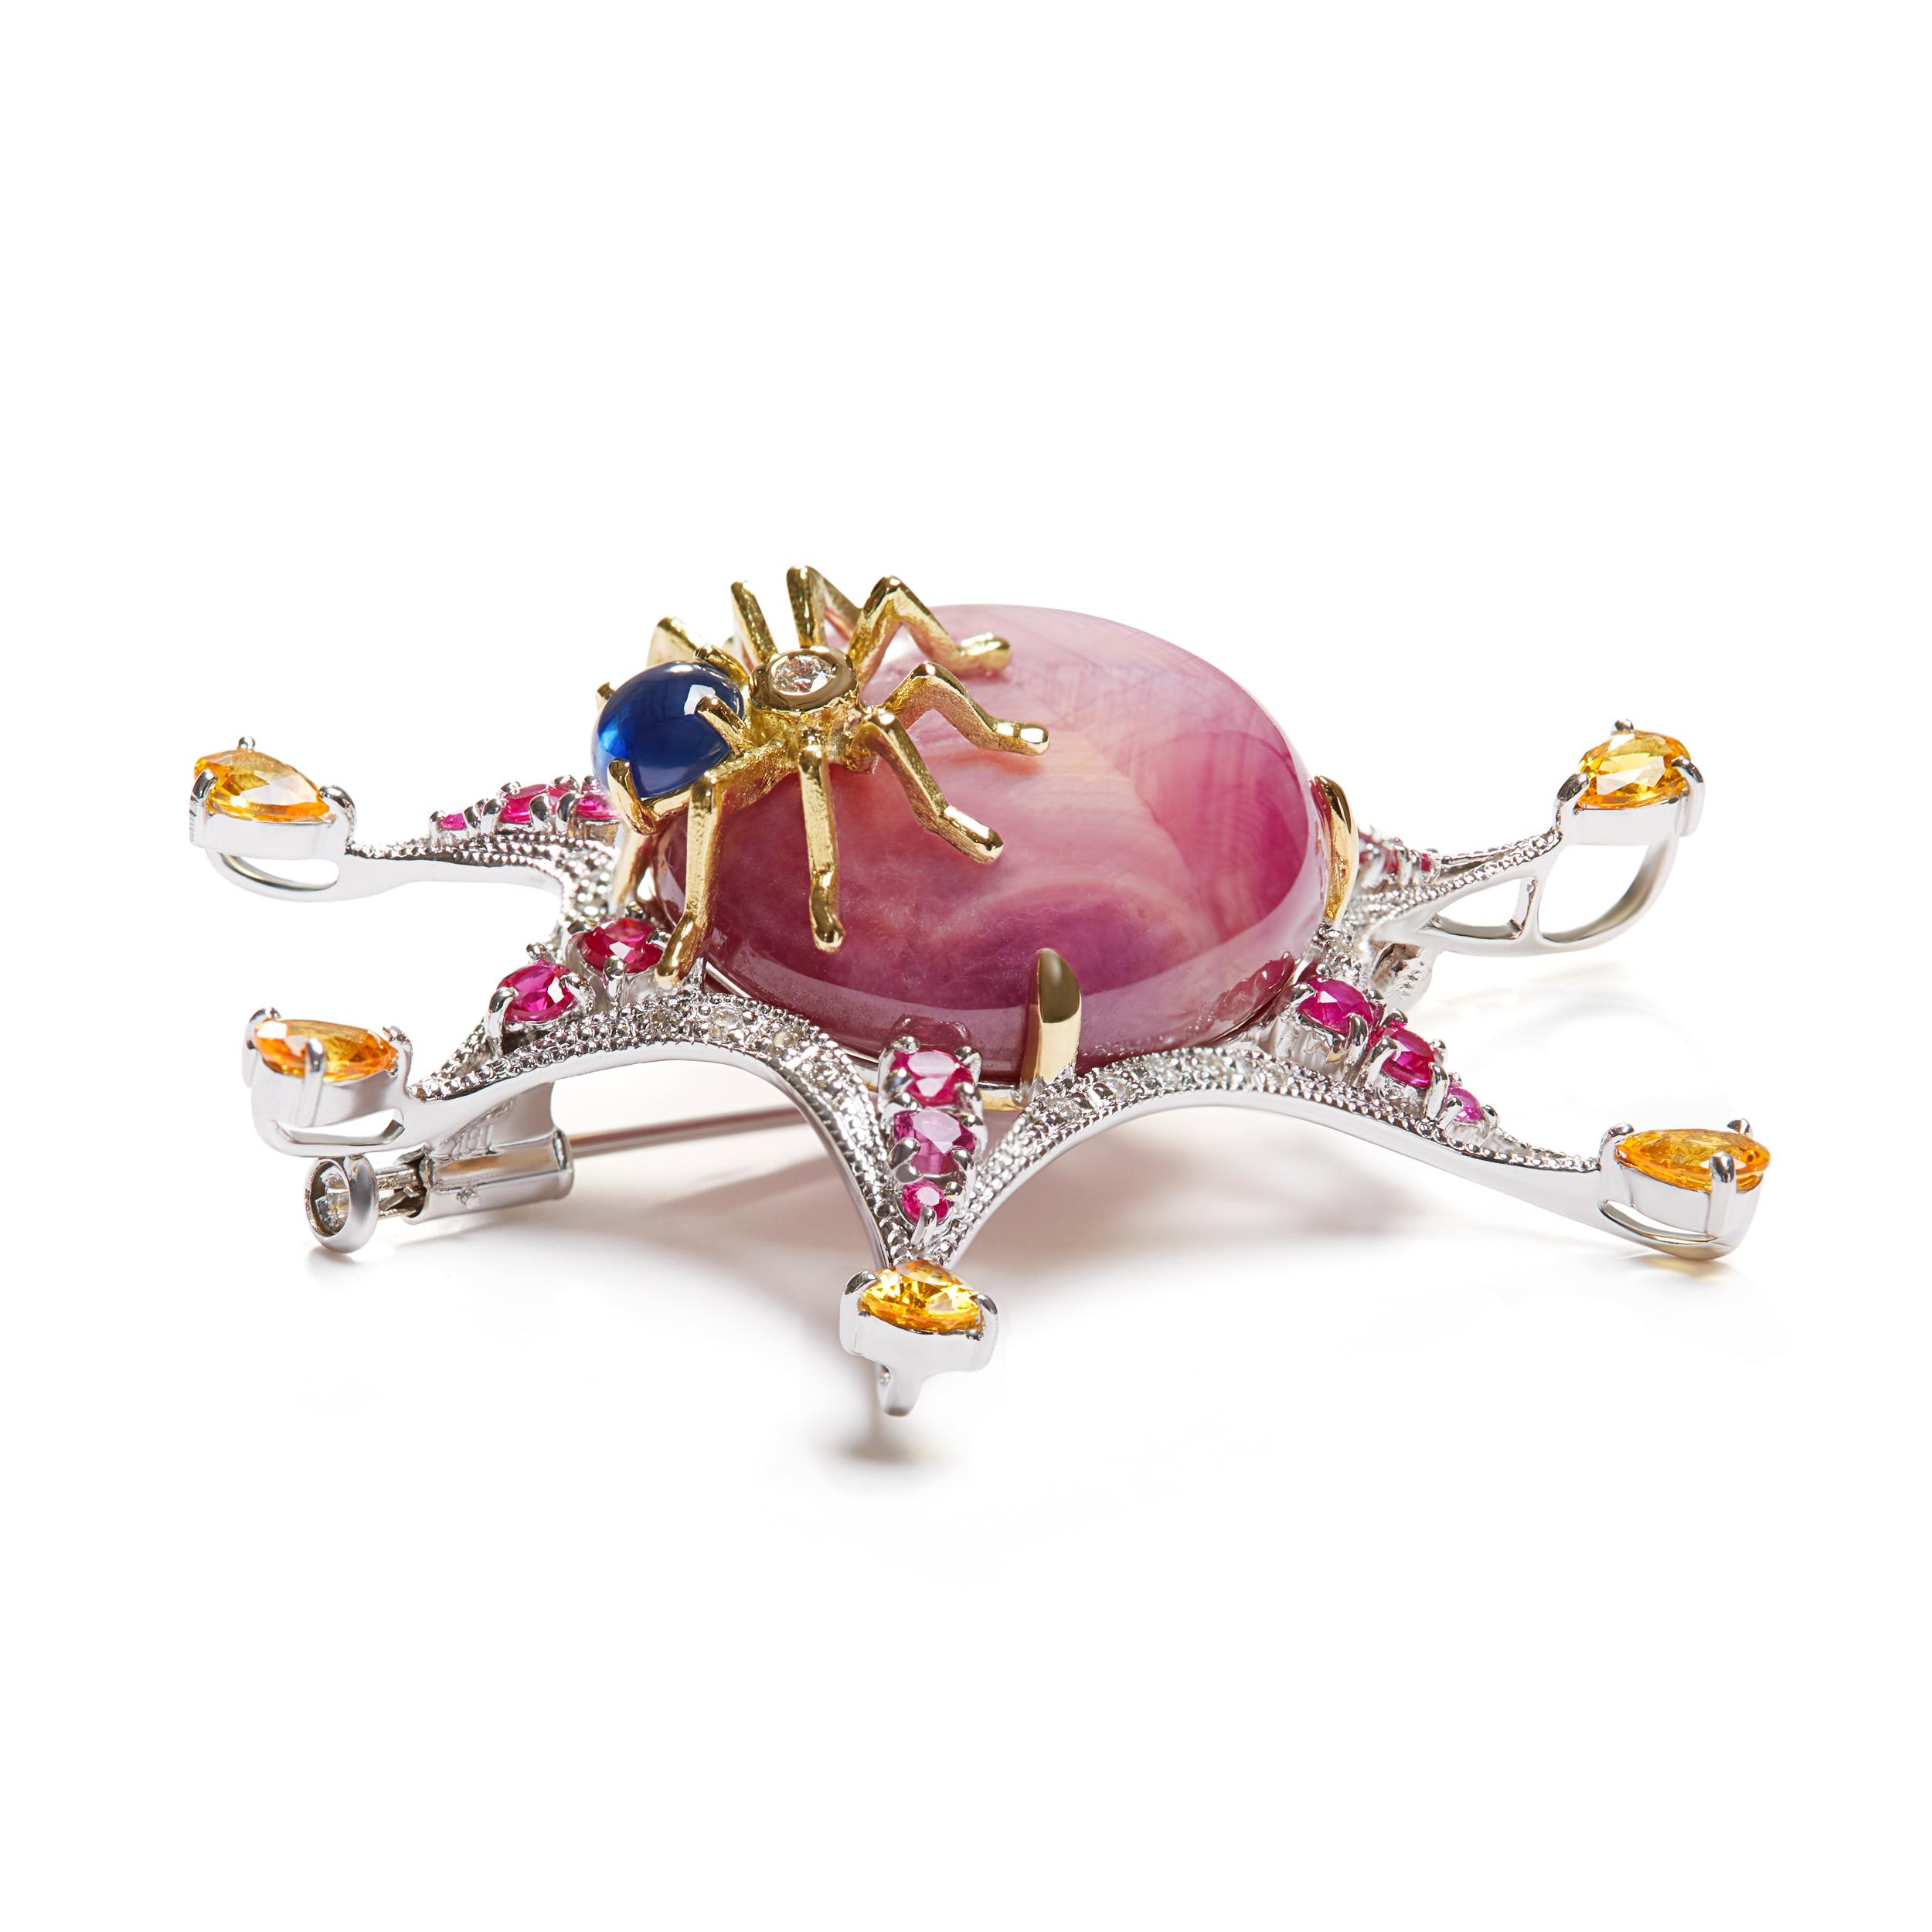 Gemstone Brooch decorated with Spider-shaped